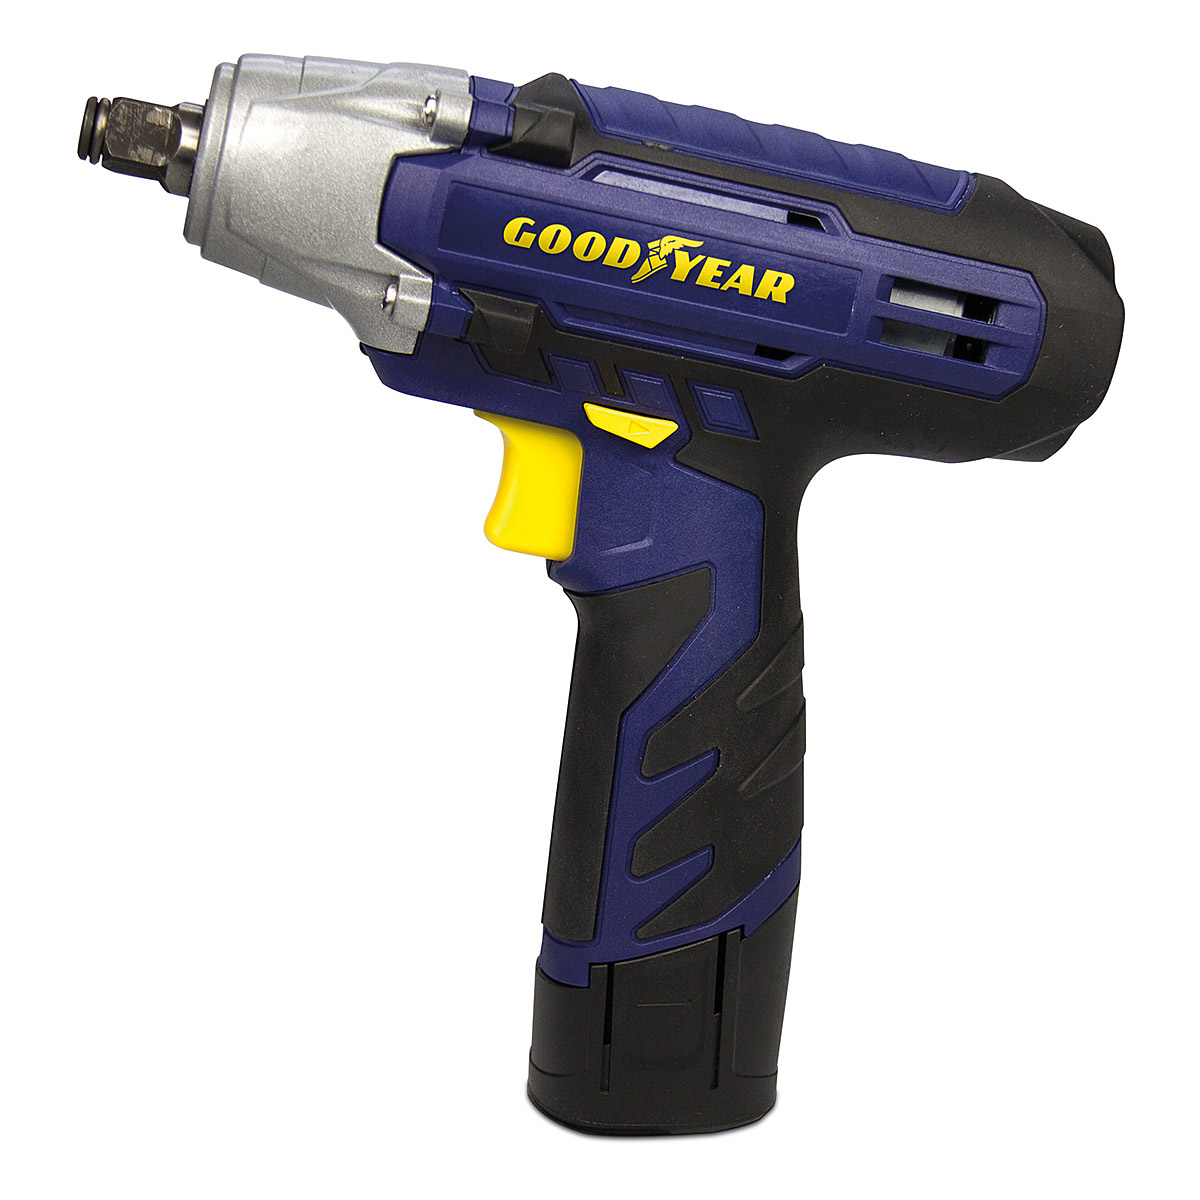 Goodyear Battery Impact Wrench